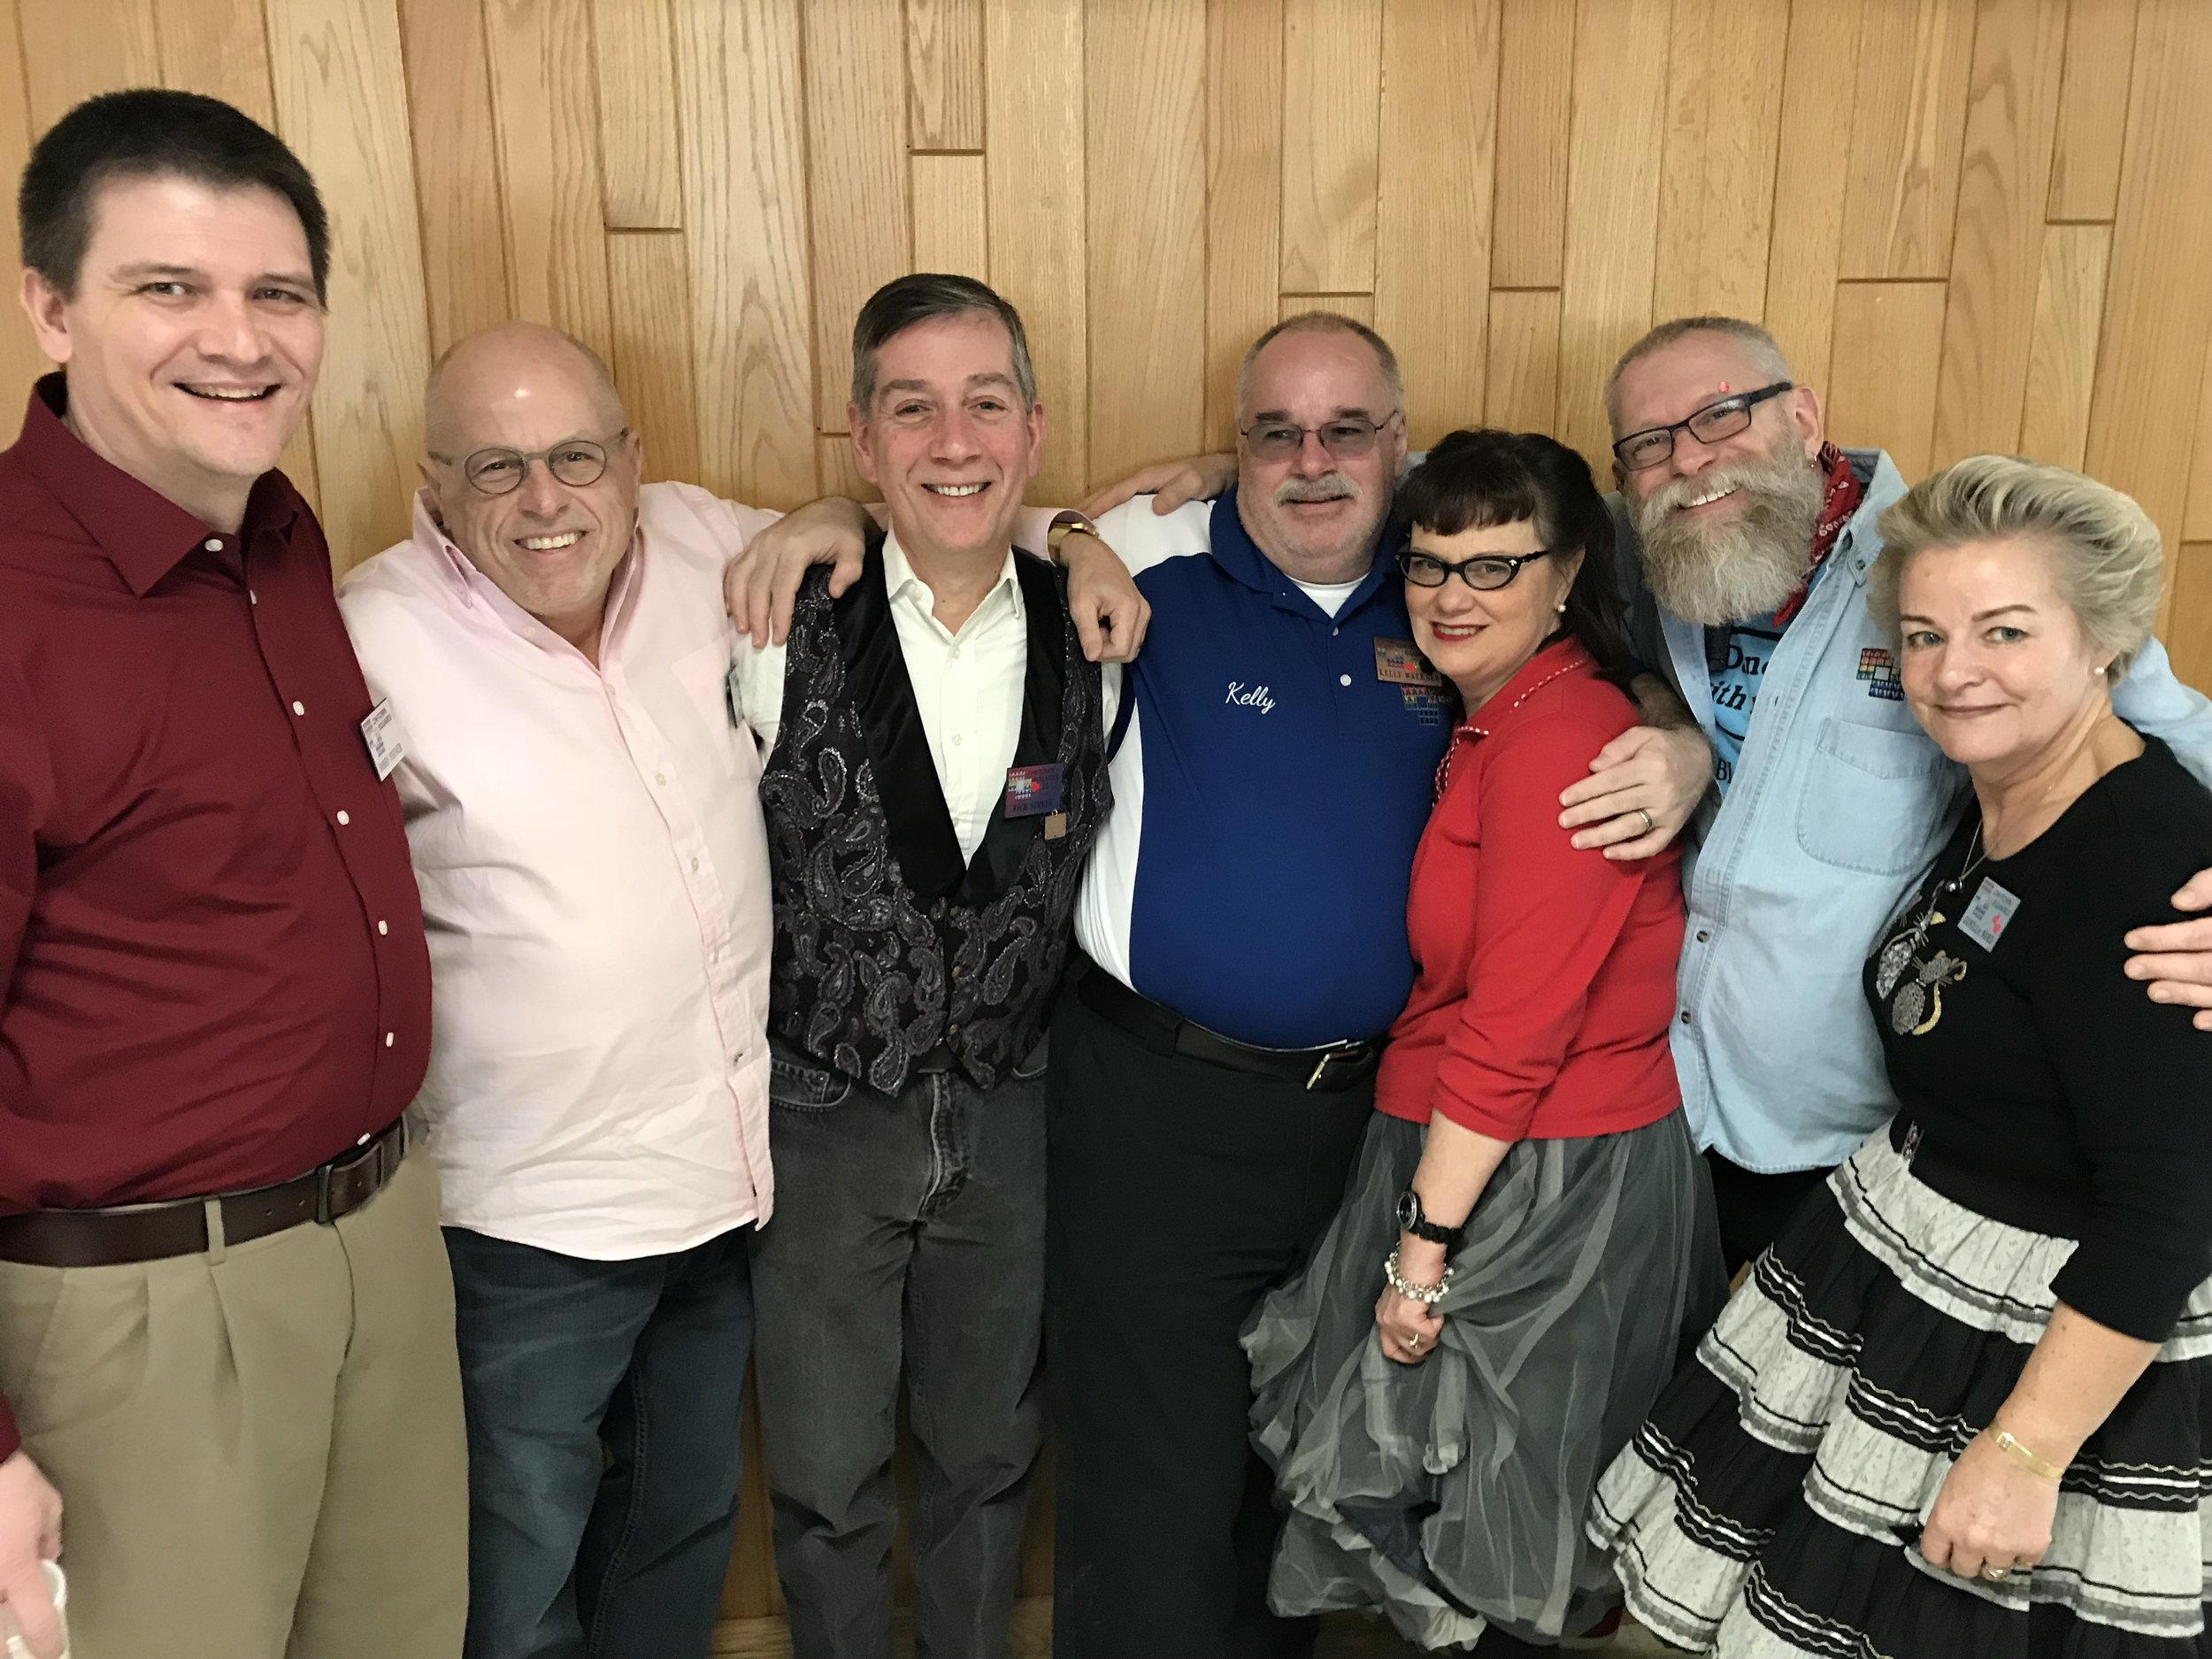 Our Club Caller Bobby Poyner, Jeff, Rick, Kelley, Diva, Rich, and Gunilla at MCASD's 57th Annual Sweetheart Dance, 2/19/2017, at Trinity Lutheran Church in Roselle